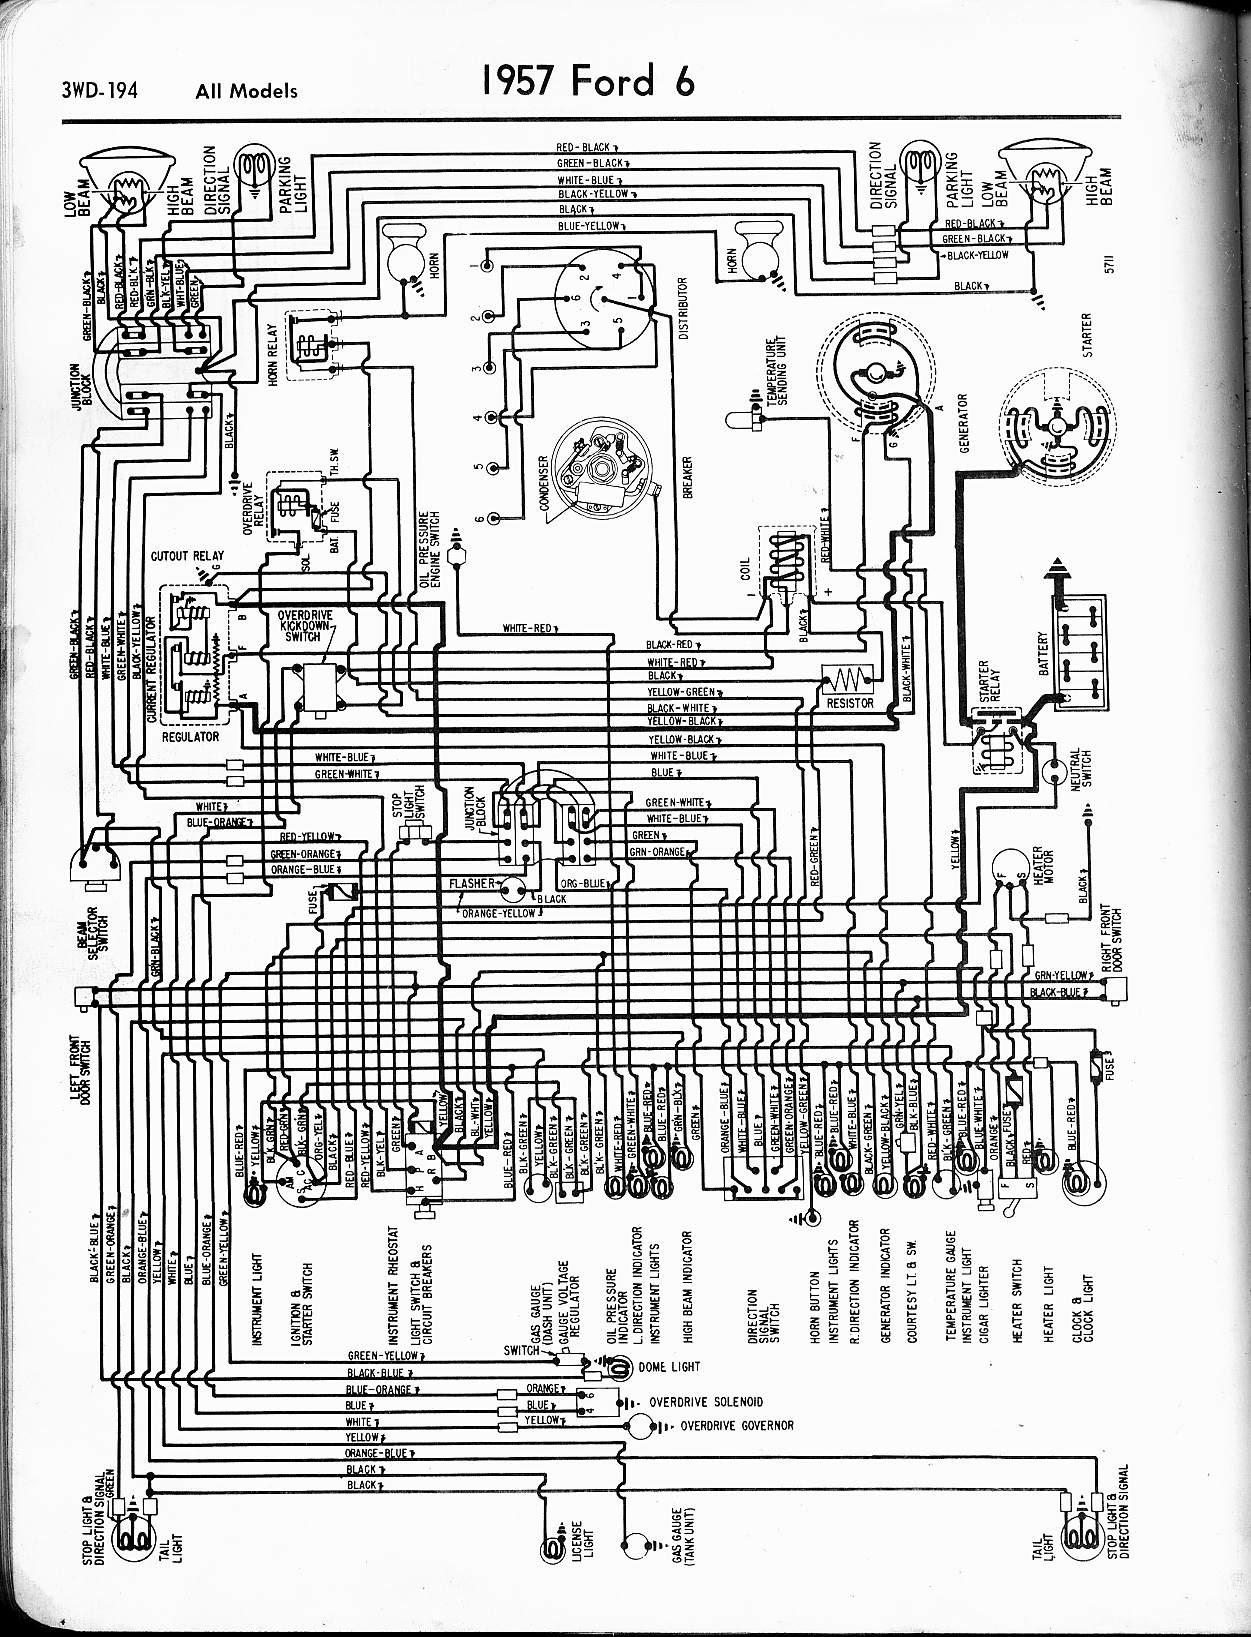 F100 Turn Signal Wiring Diagram Free Download Wiring Diagrams Element Element Miglioribanche It